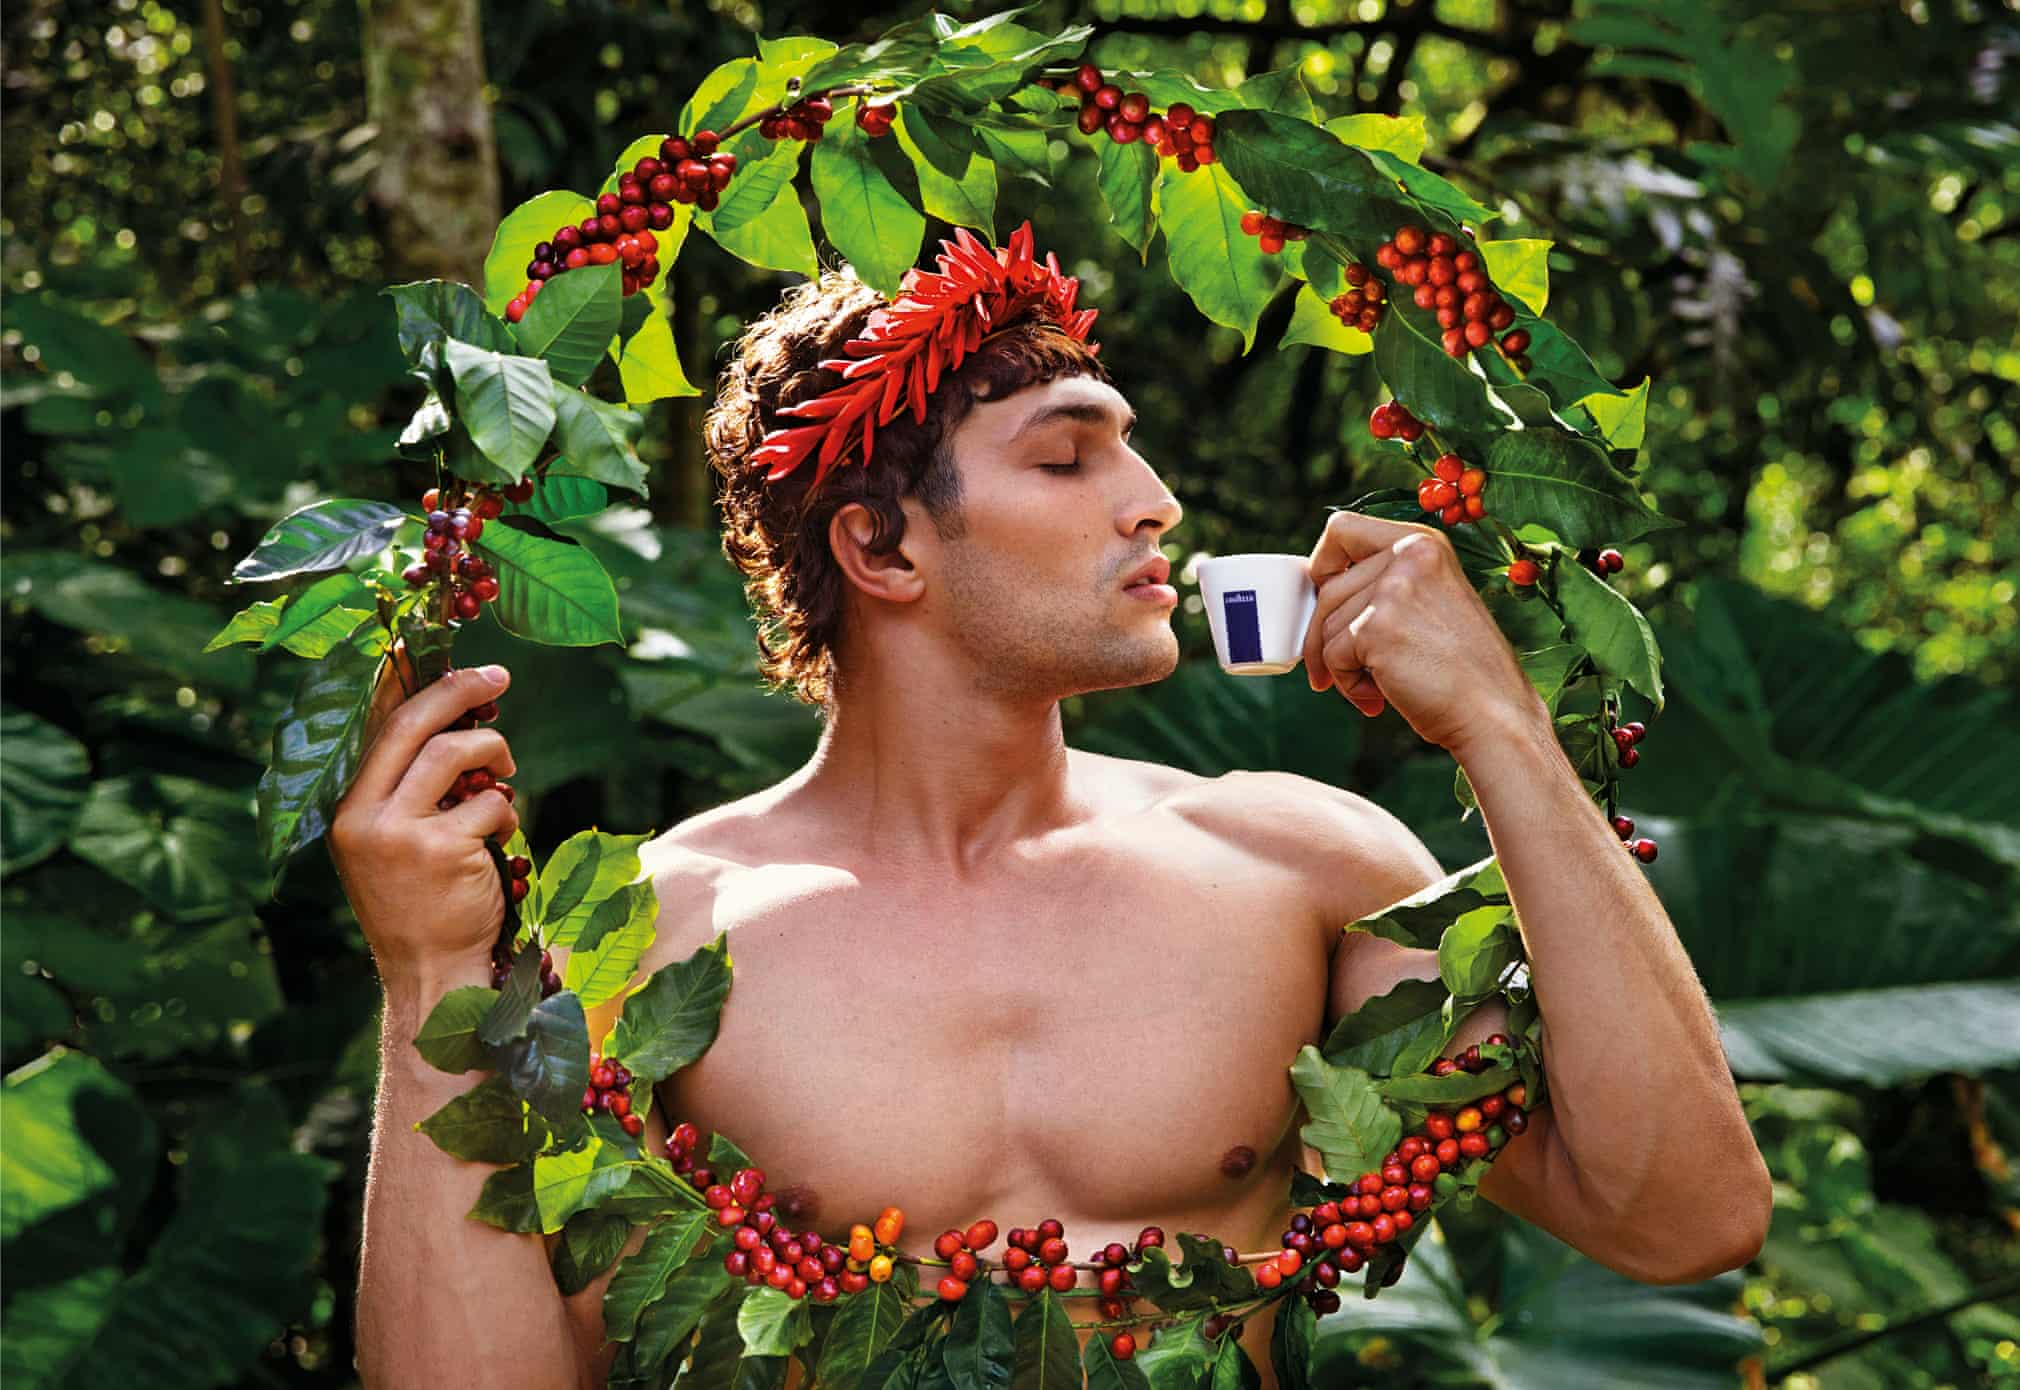 lavazza-x-david-lachapelle-2020-calendar-5